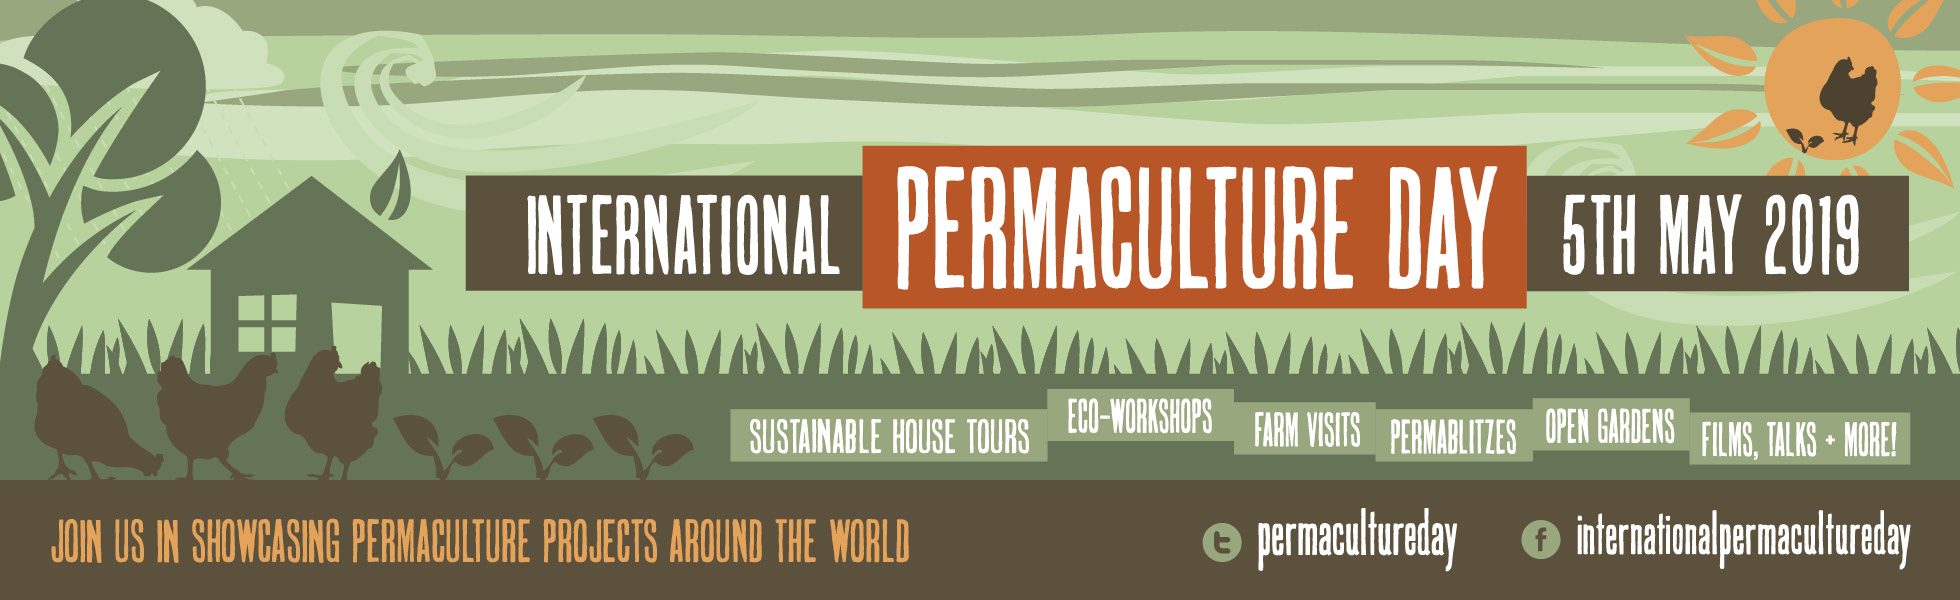 International Permaculture Day 2019